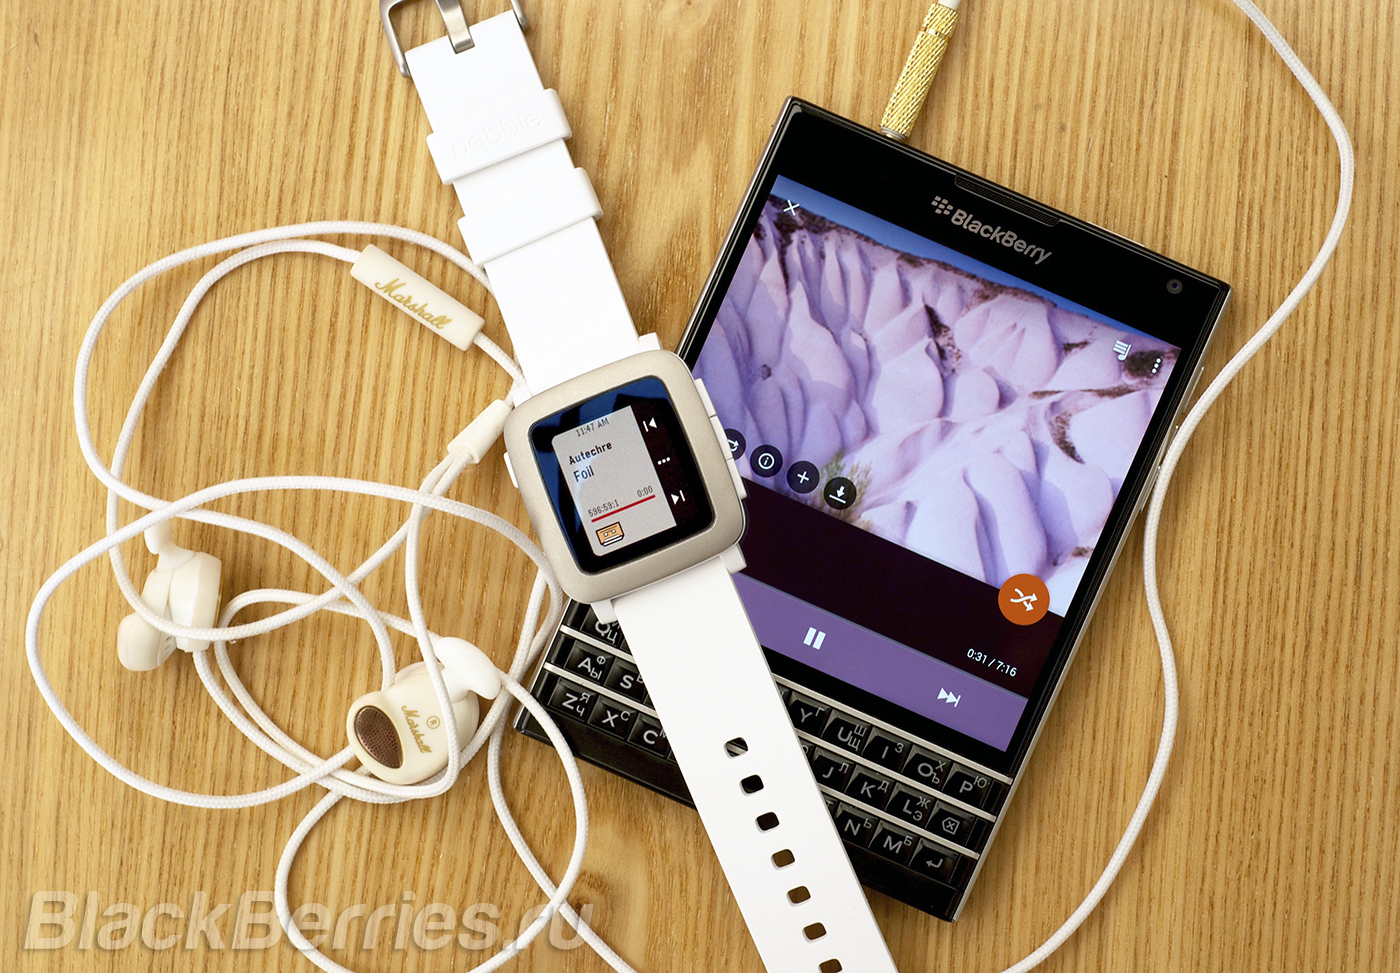 BlackBerry-Passport-Pebble-Time-56